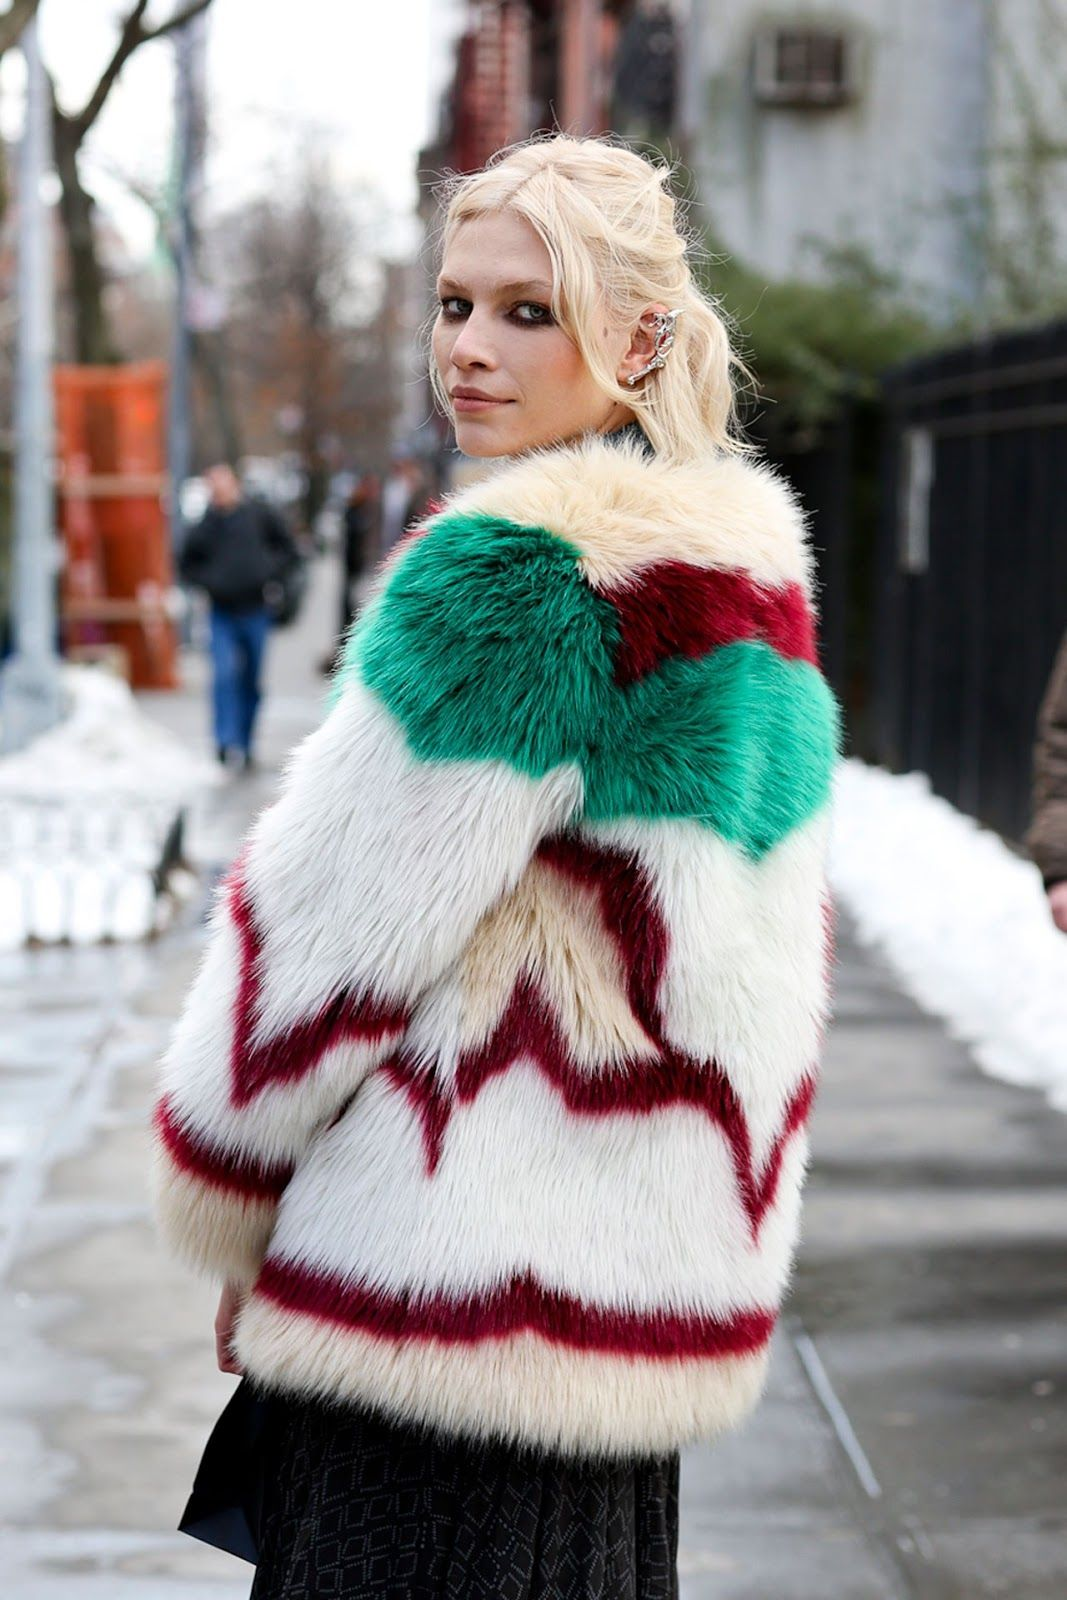 Aline Weber wearing an amazing colorful  fur coat.